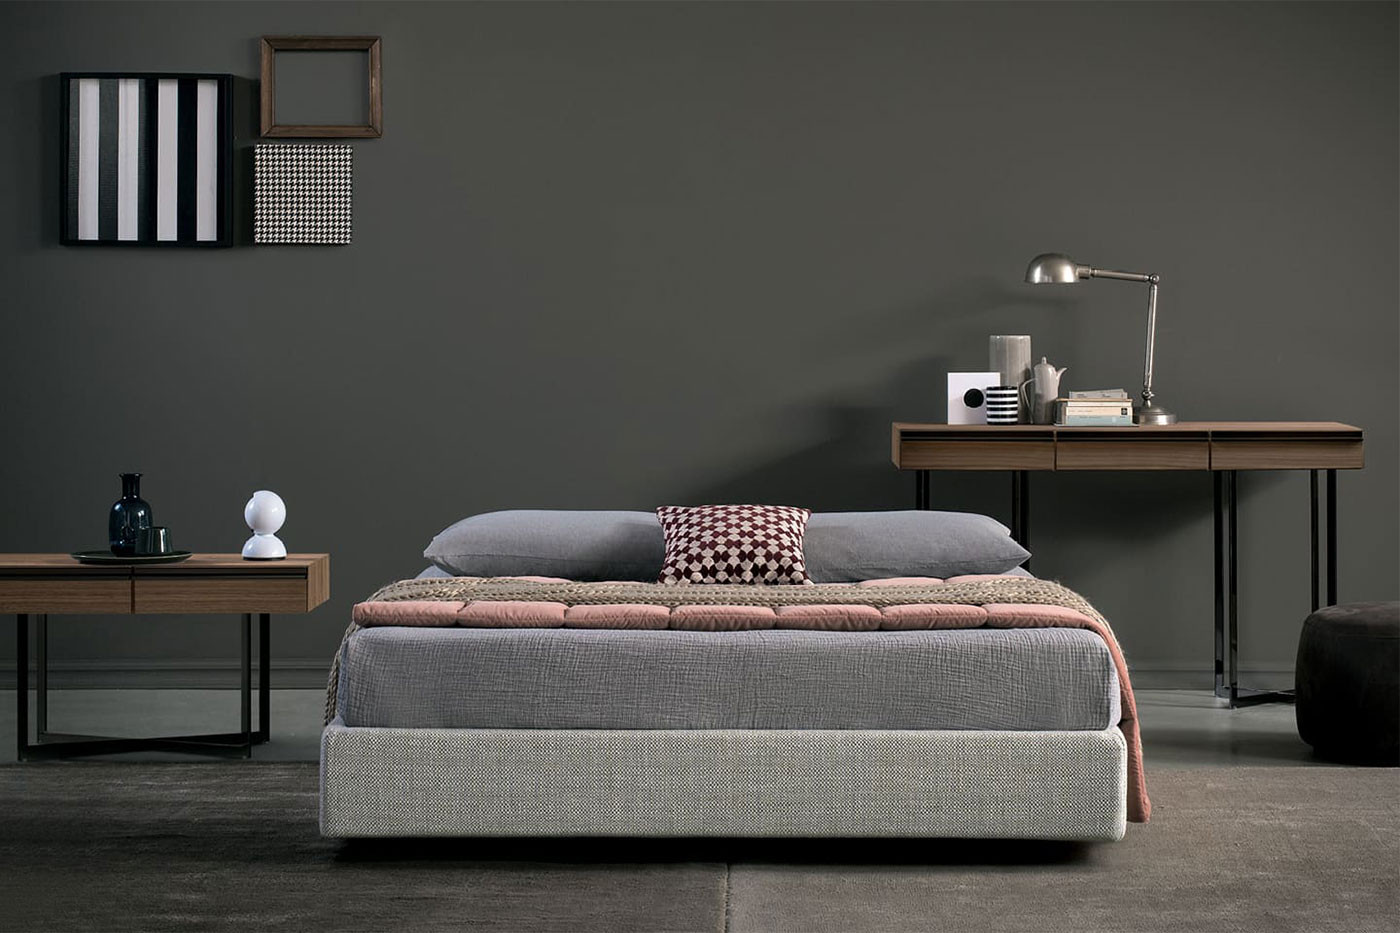 A space saving upholstered bed without headboard or footboard, available with or without storage